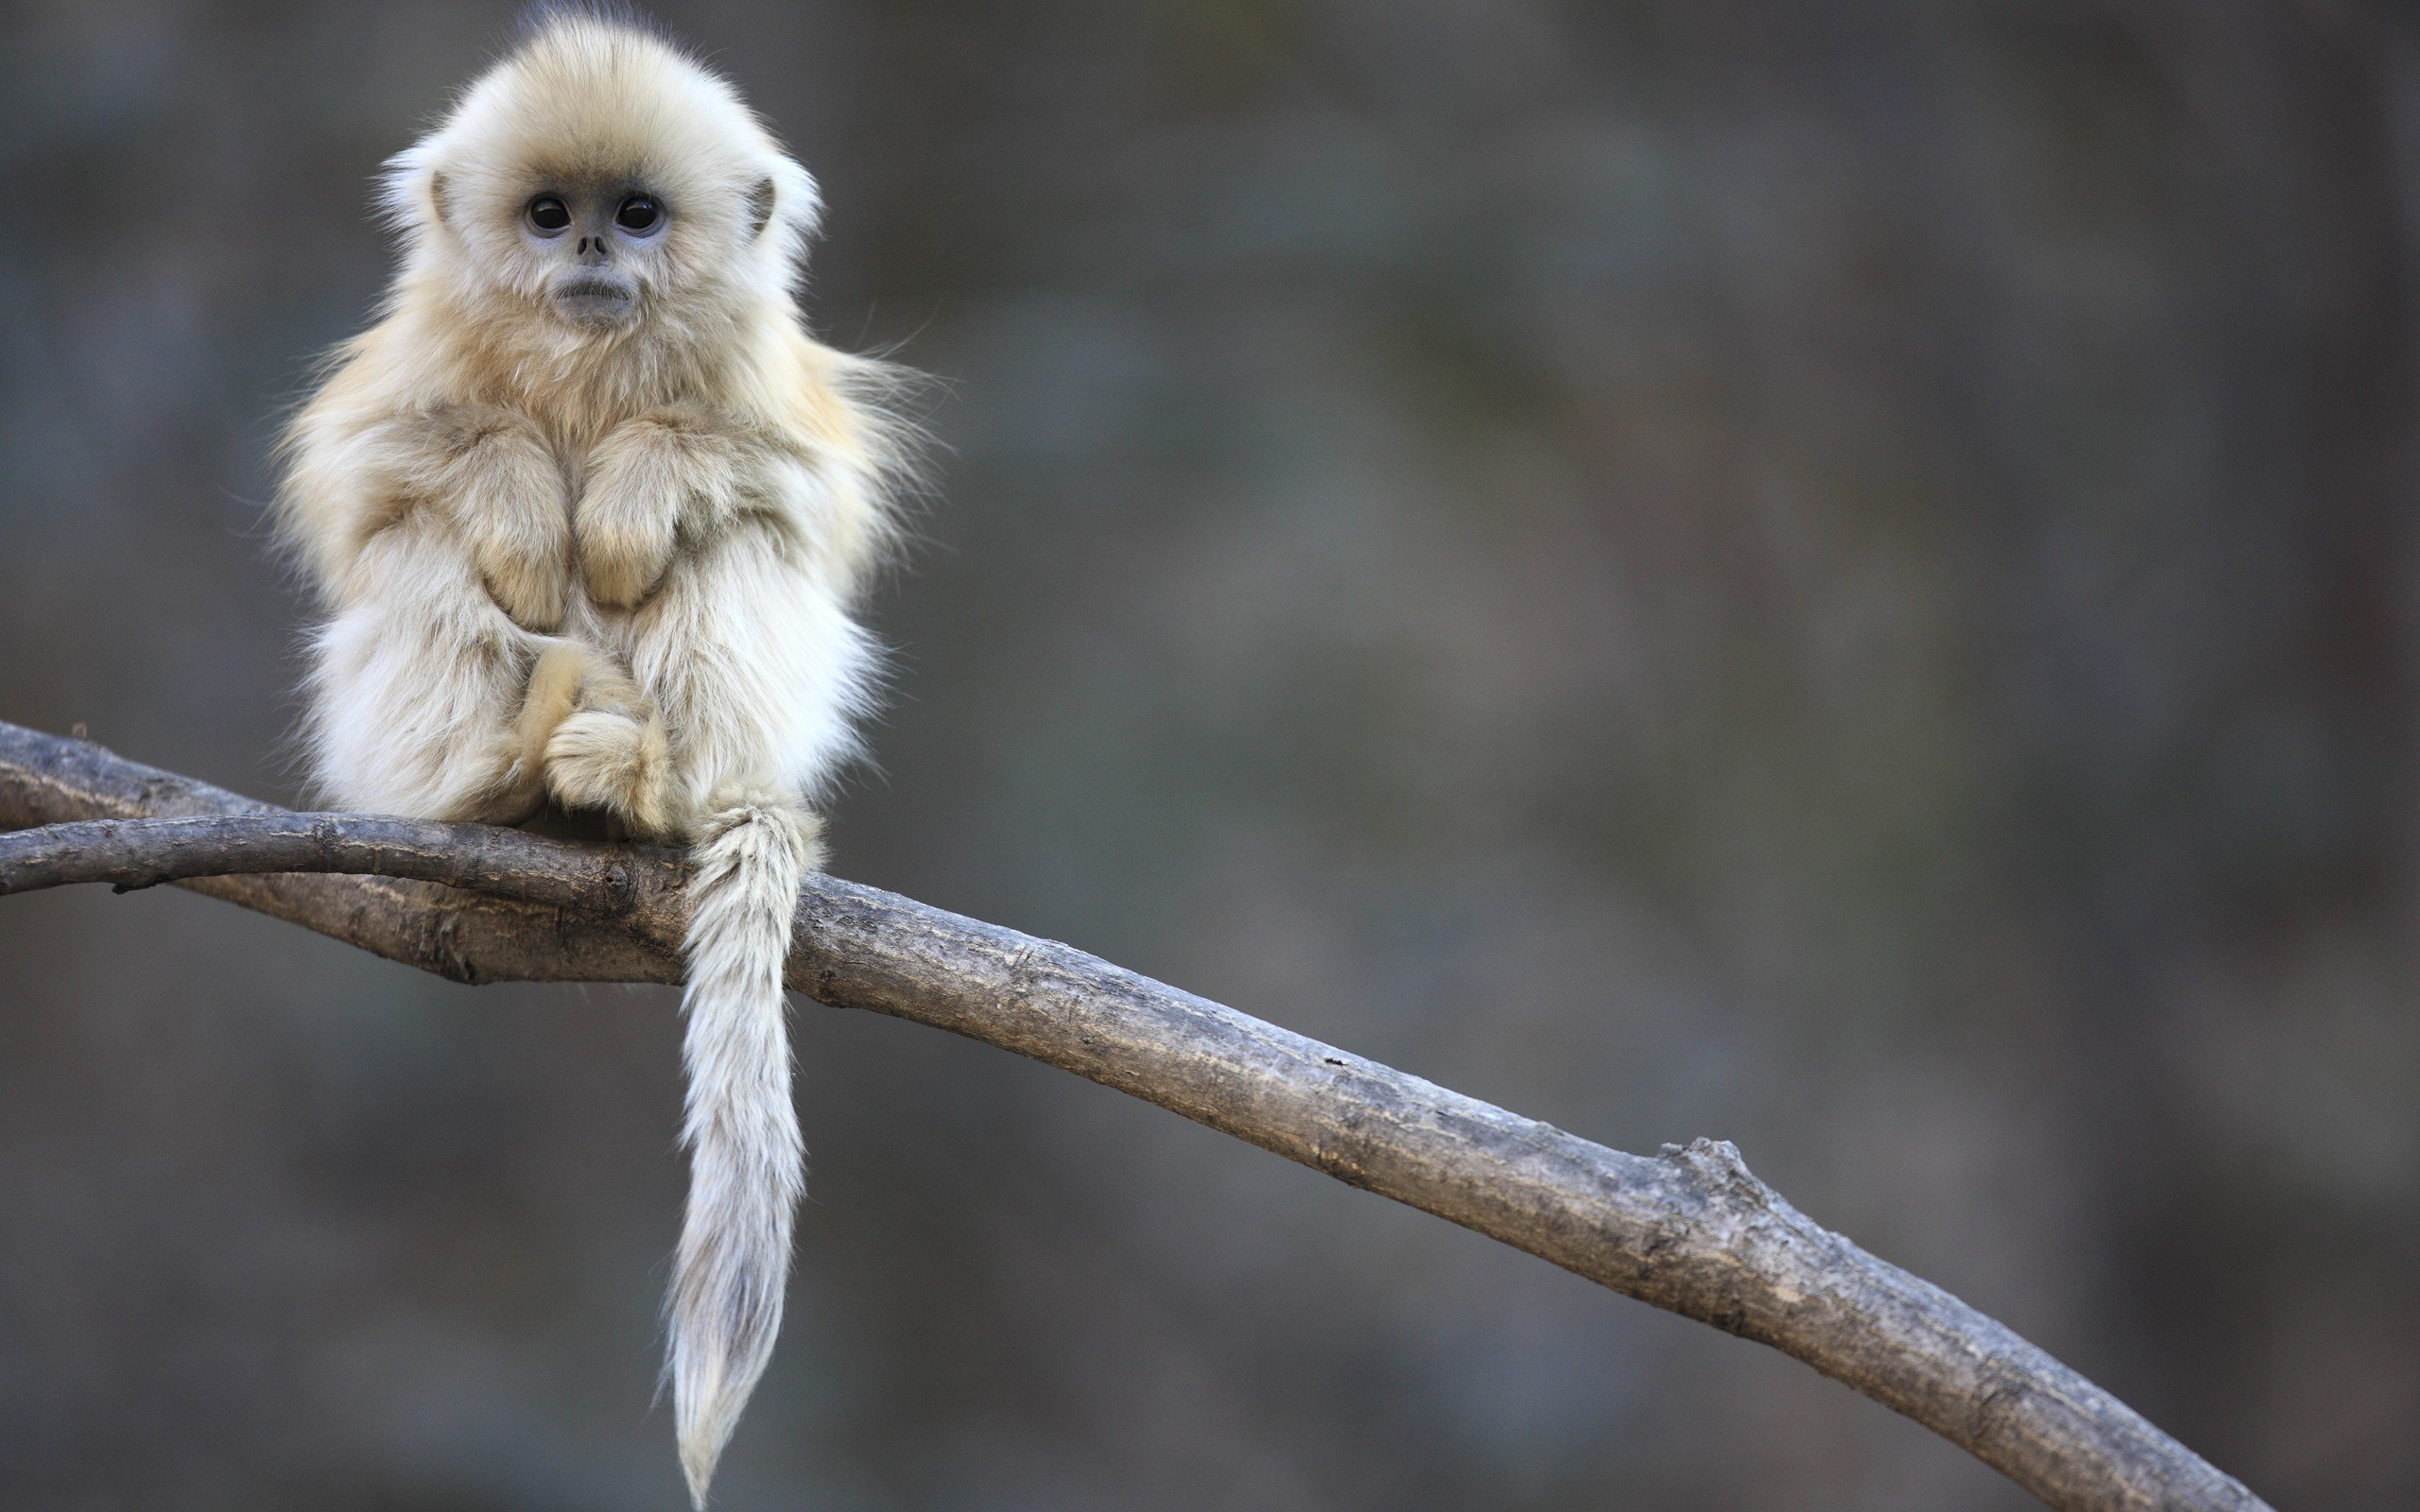 Free download Golden Snub-nosed Monkey wallpaper ID:29630 hd 2560x1600 for computer